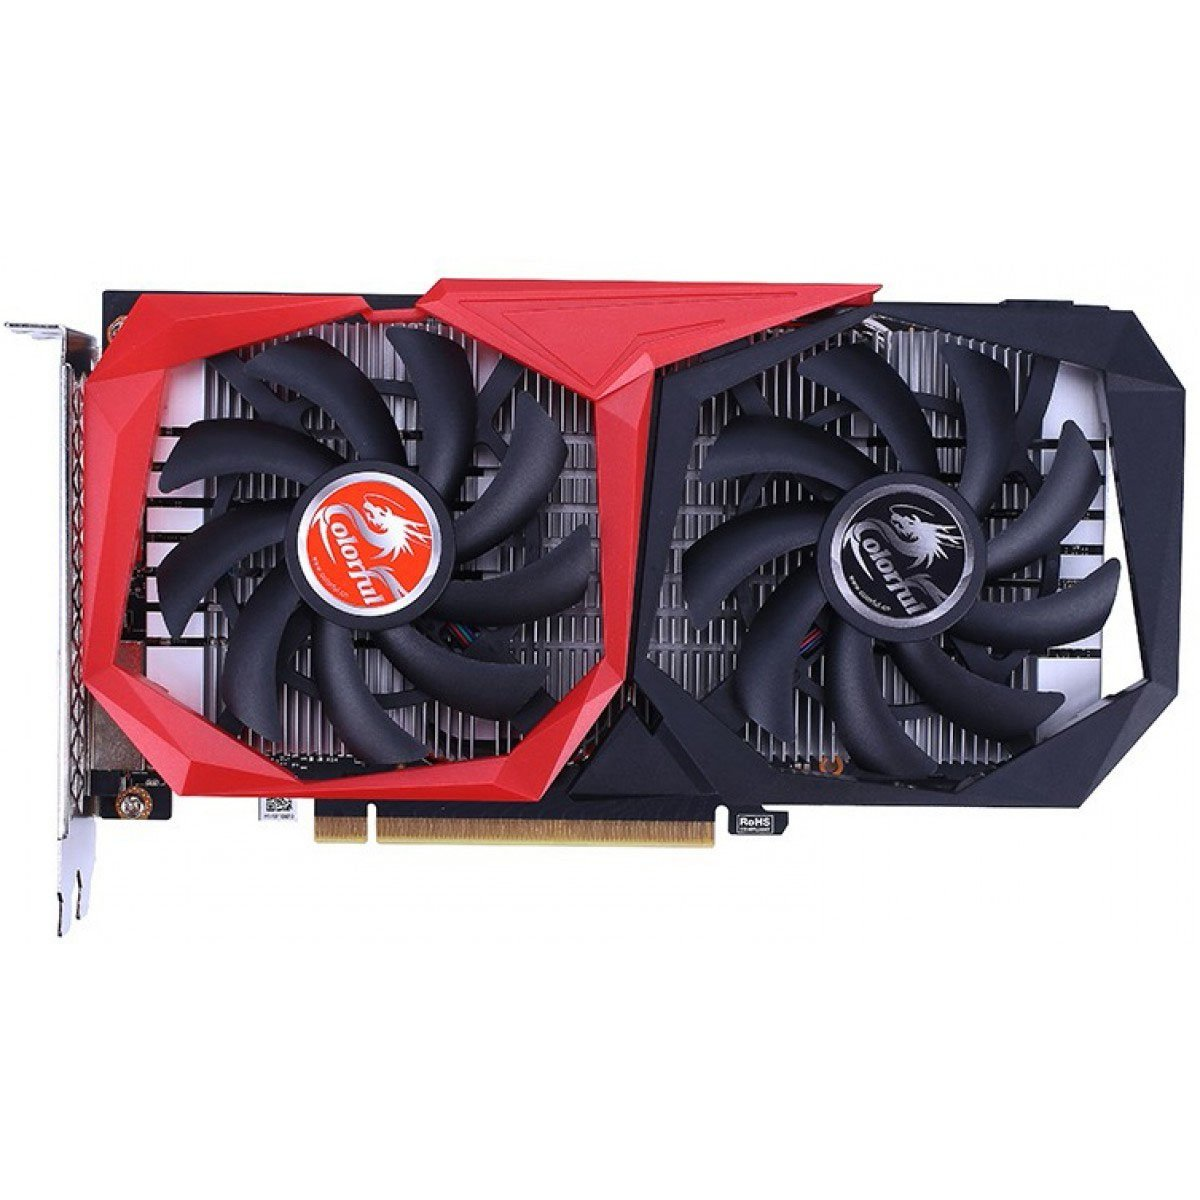 placa de video 4gb gtx1650 colorful super dual gf nvidia 1725mhz hdmi dvi disp gddr6 51081 2000 203447